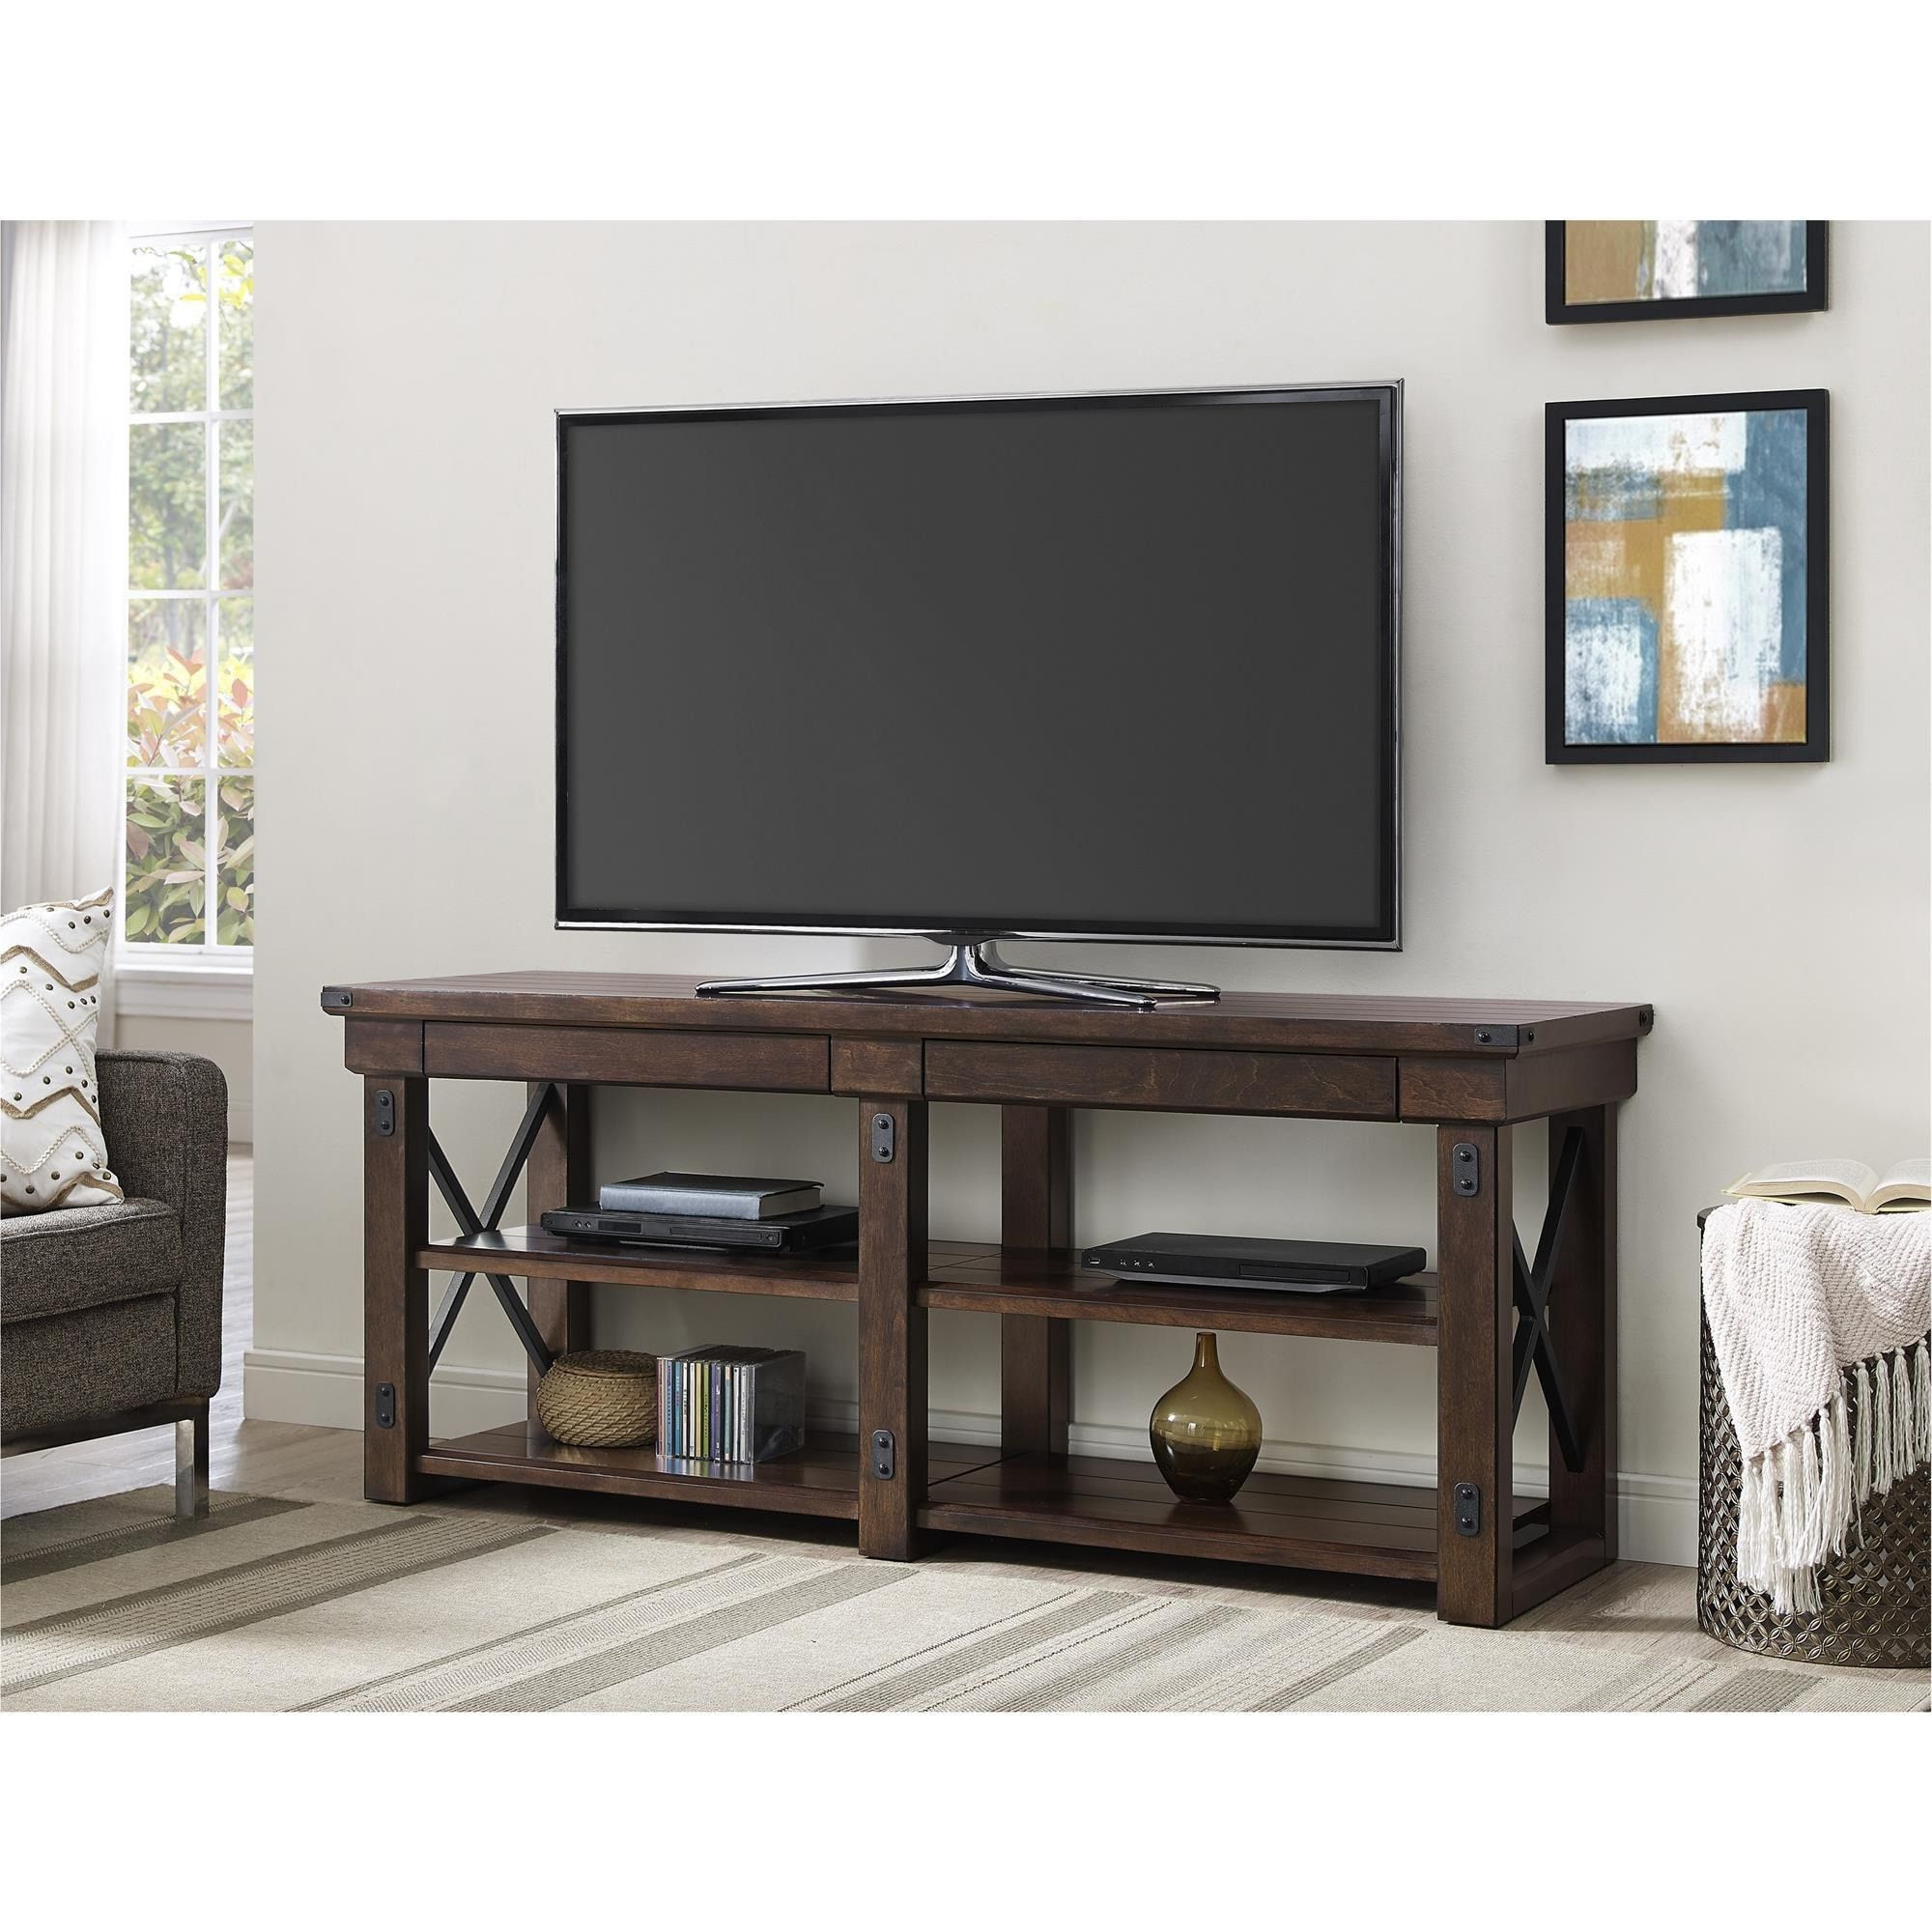 Ameriwood Home Wildwood Mahogany Veneer 65 Inch Tv Stand (65 Inch Tv Throughout Noah 75 Inch Tv Stands (Gallery 1 of 20)